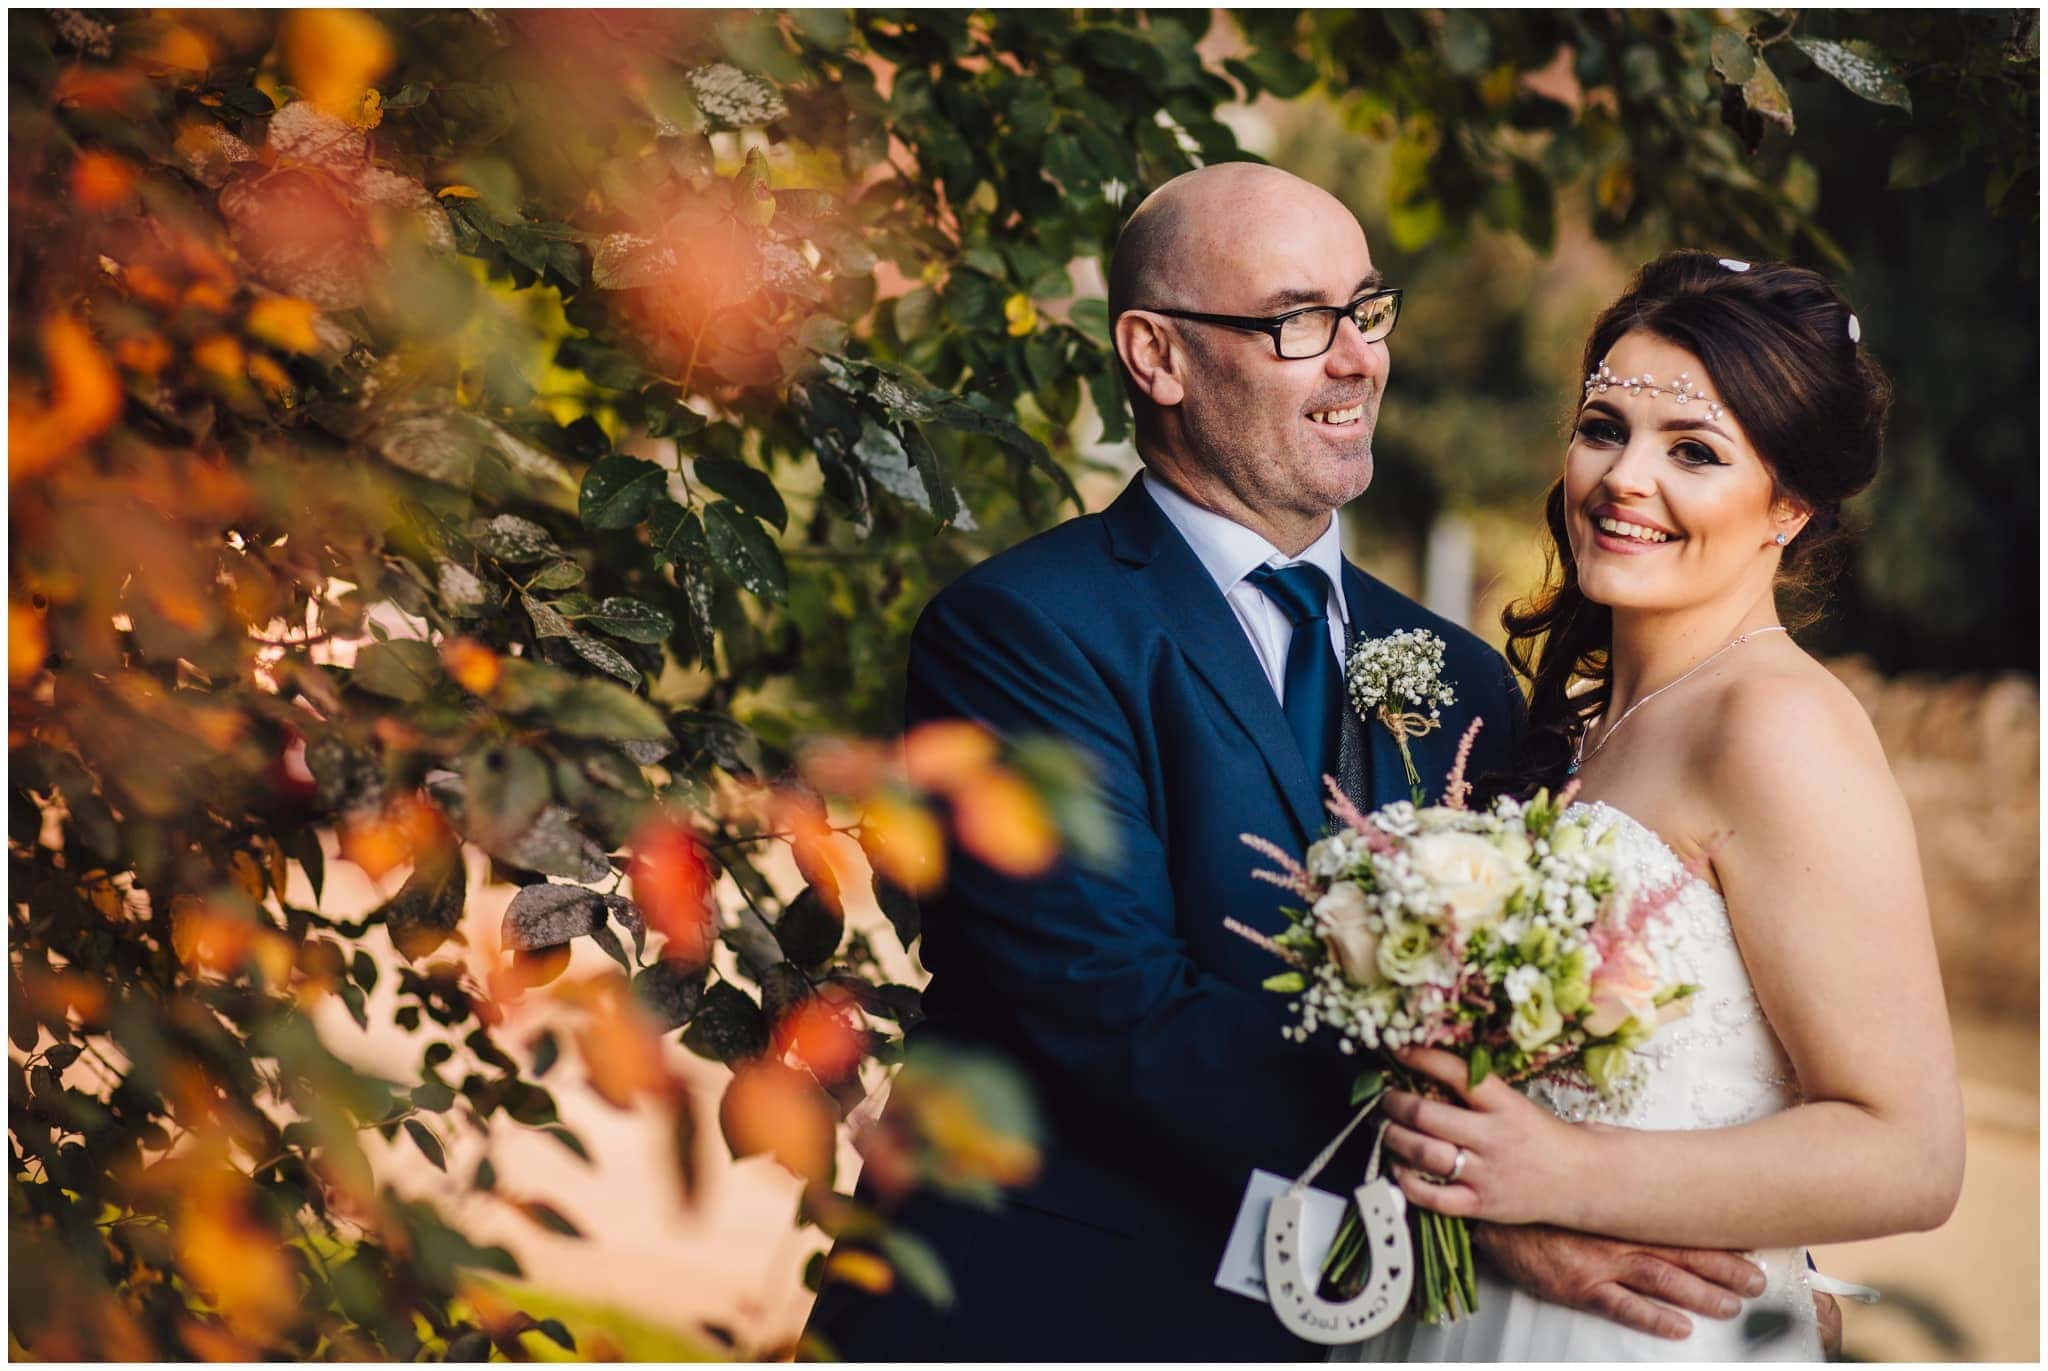 Nuneaton Wedding Photographer – Jodene & Pat's Wedding Day